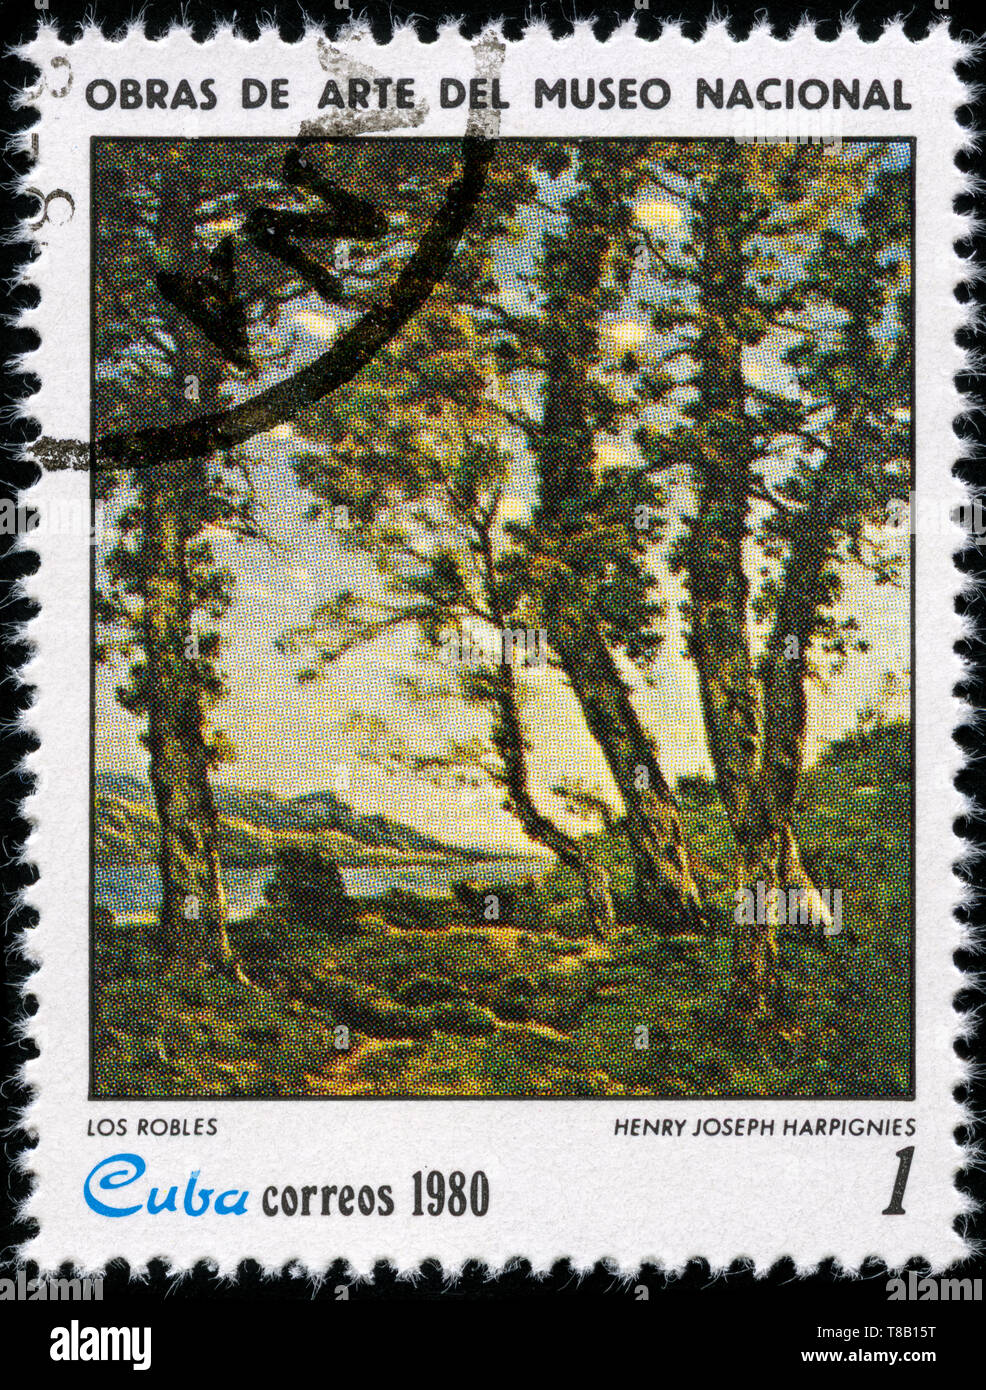 Postage stamp from Cuba in the Paintings from the National Museum series issued in 1980 - Stock Image